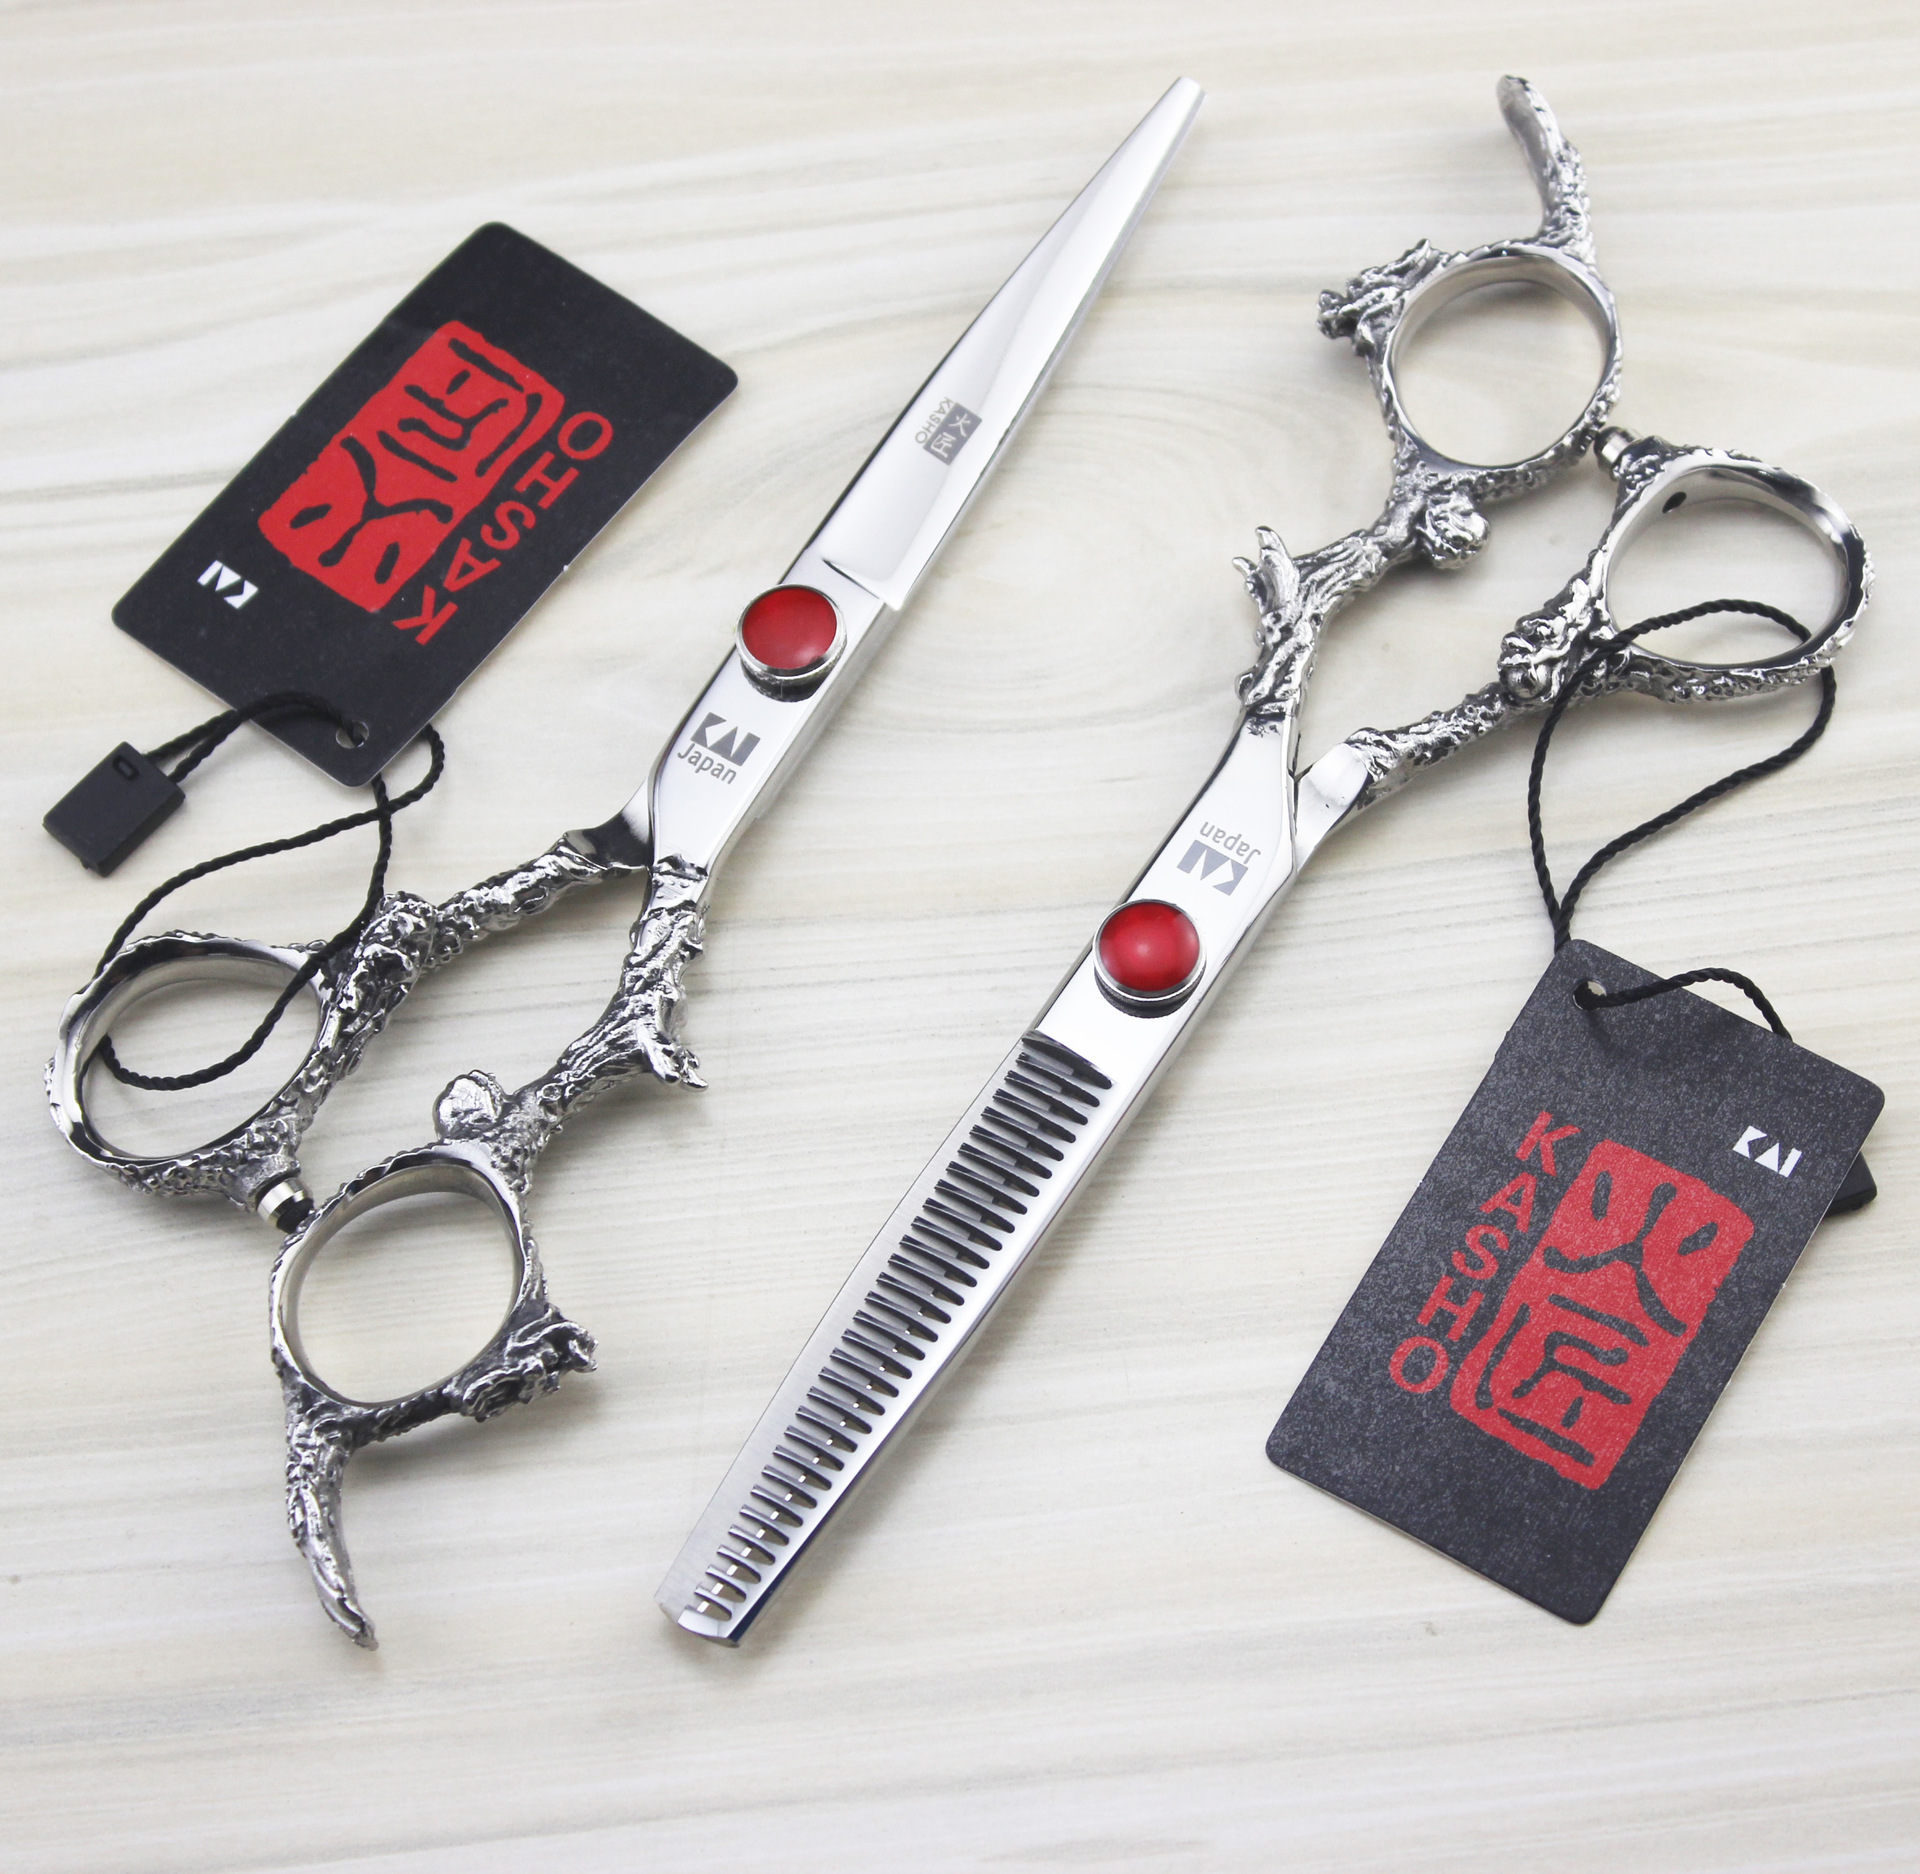 Professional Hair Scissors set 6 inch Straight Thinning scissors barber selective professional curly hair set